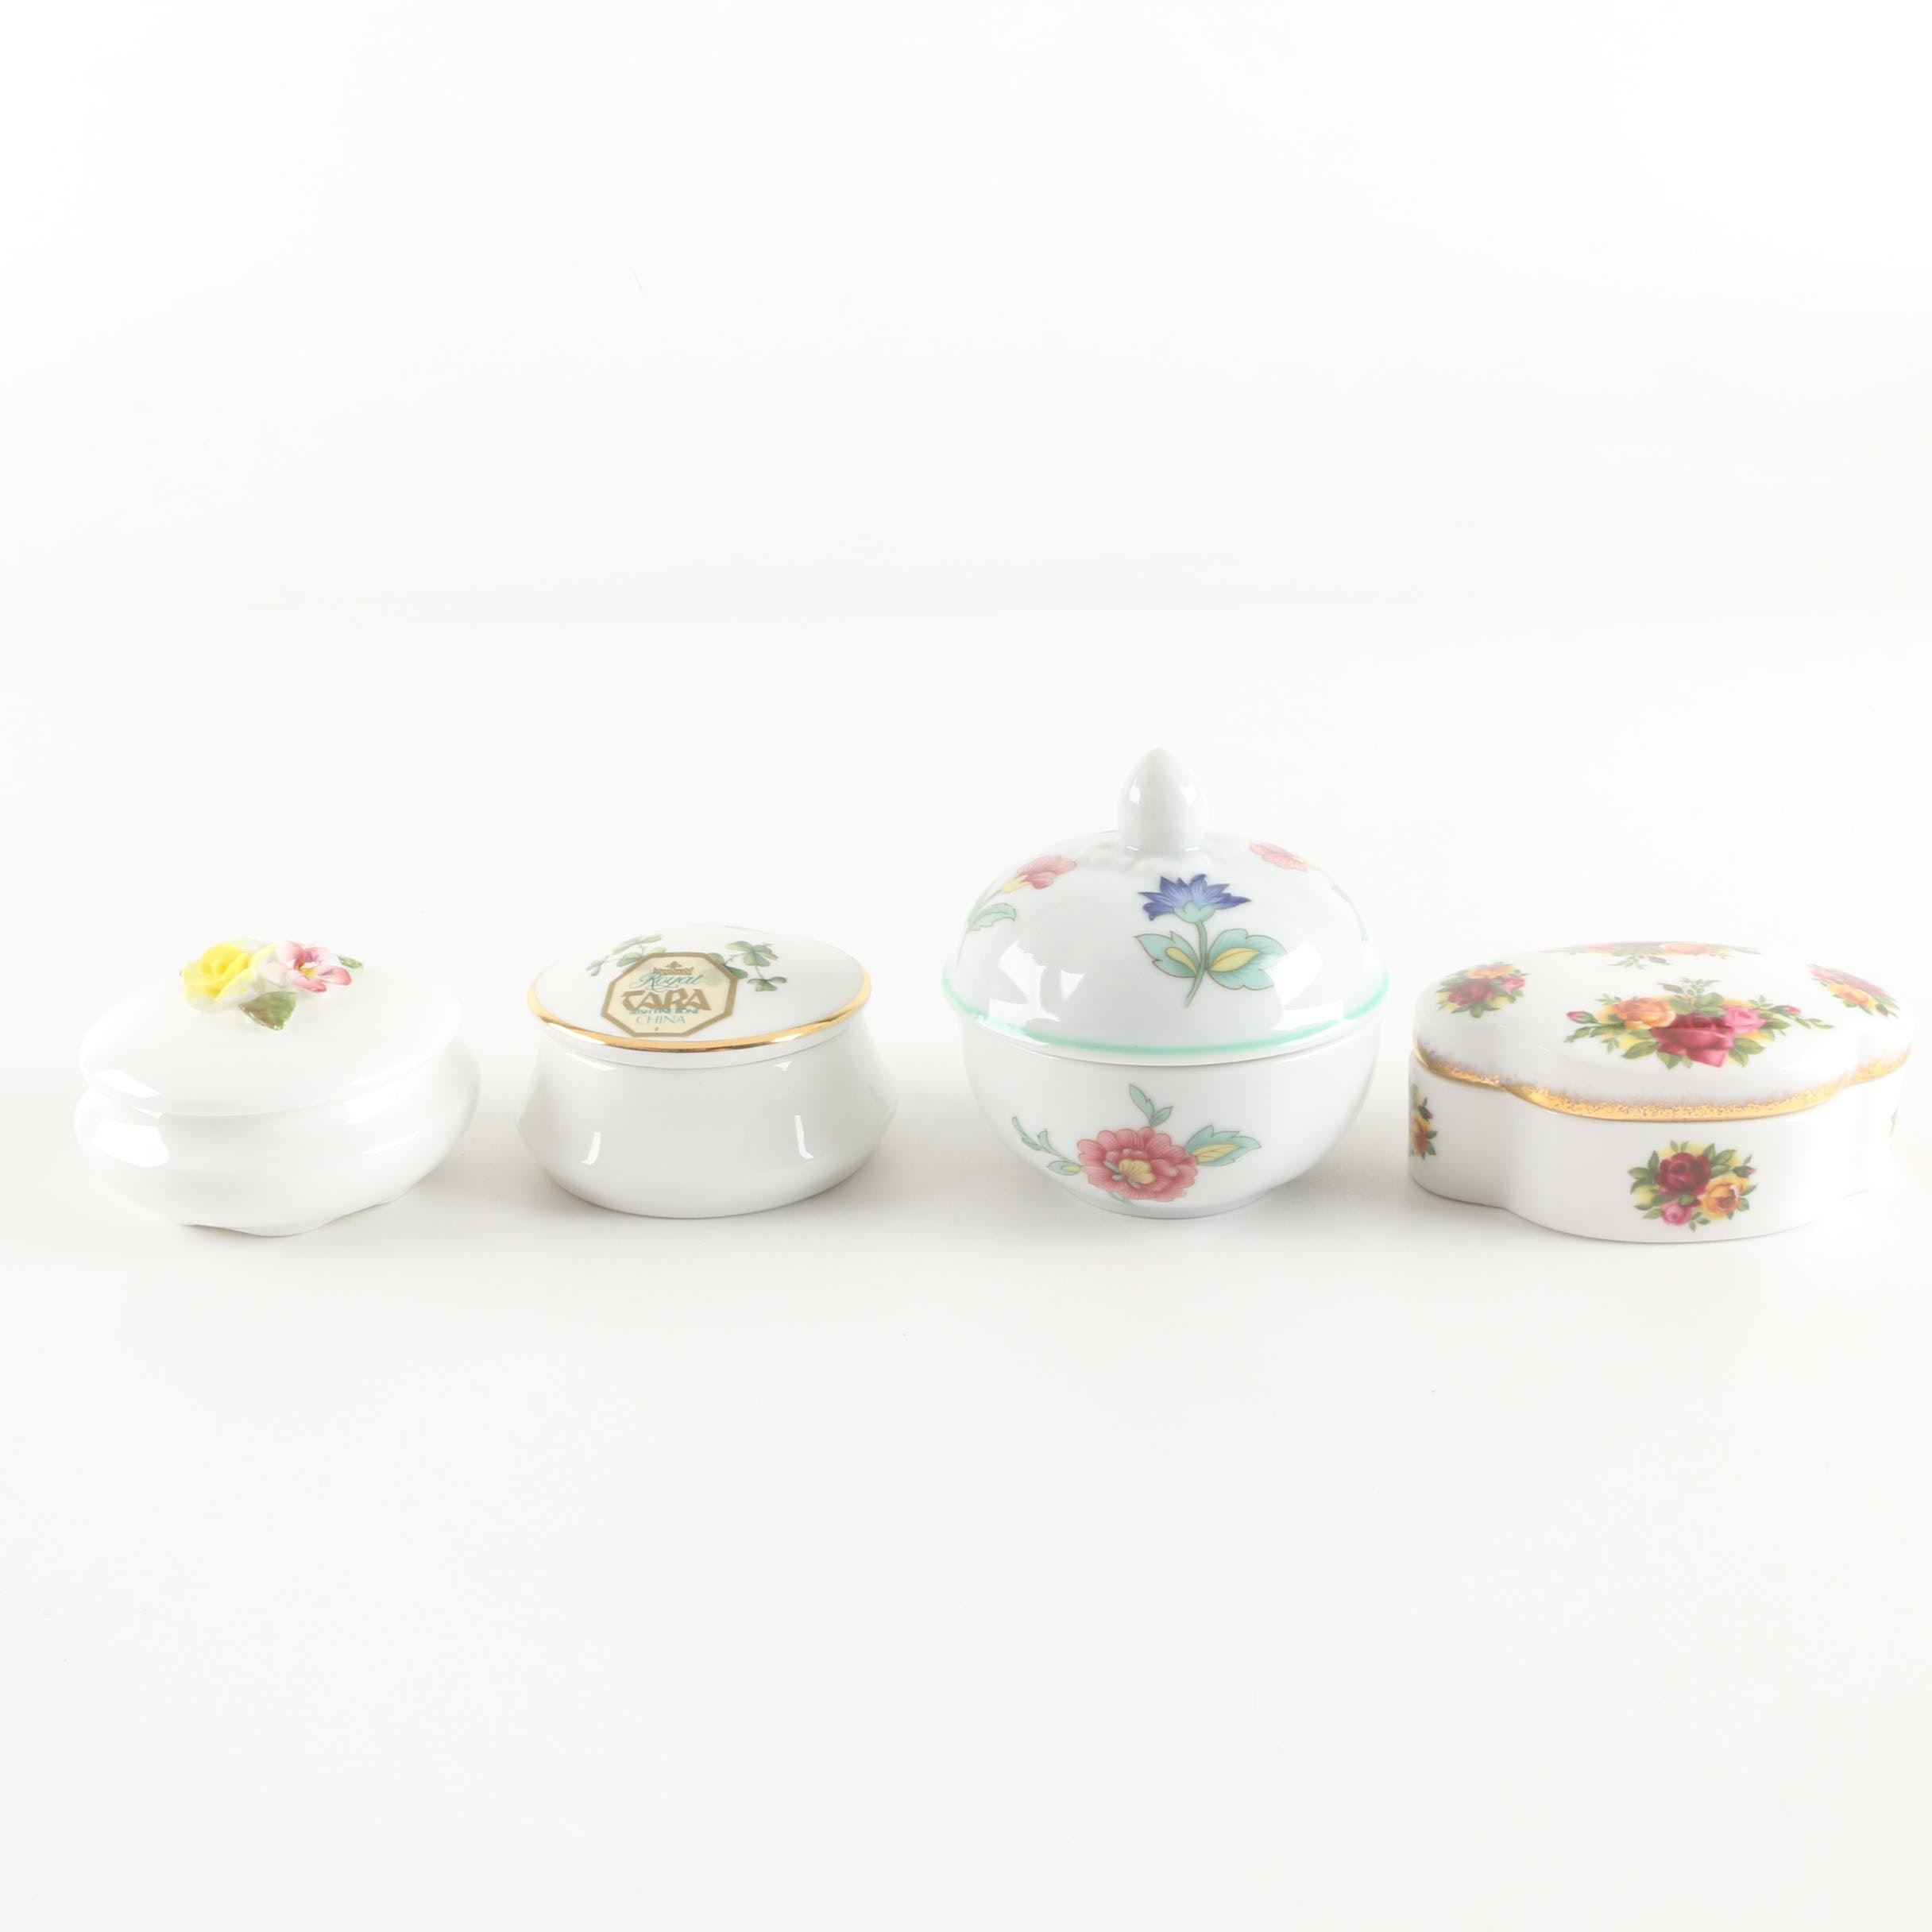 Porcelain Floral Themed Trinket Boxes Featuring Royal Albert and More